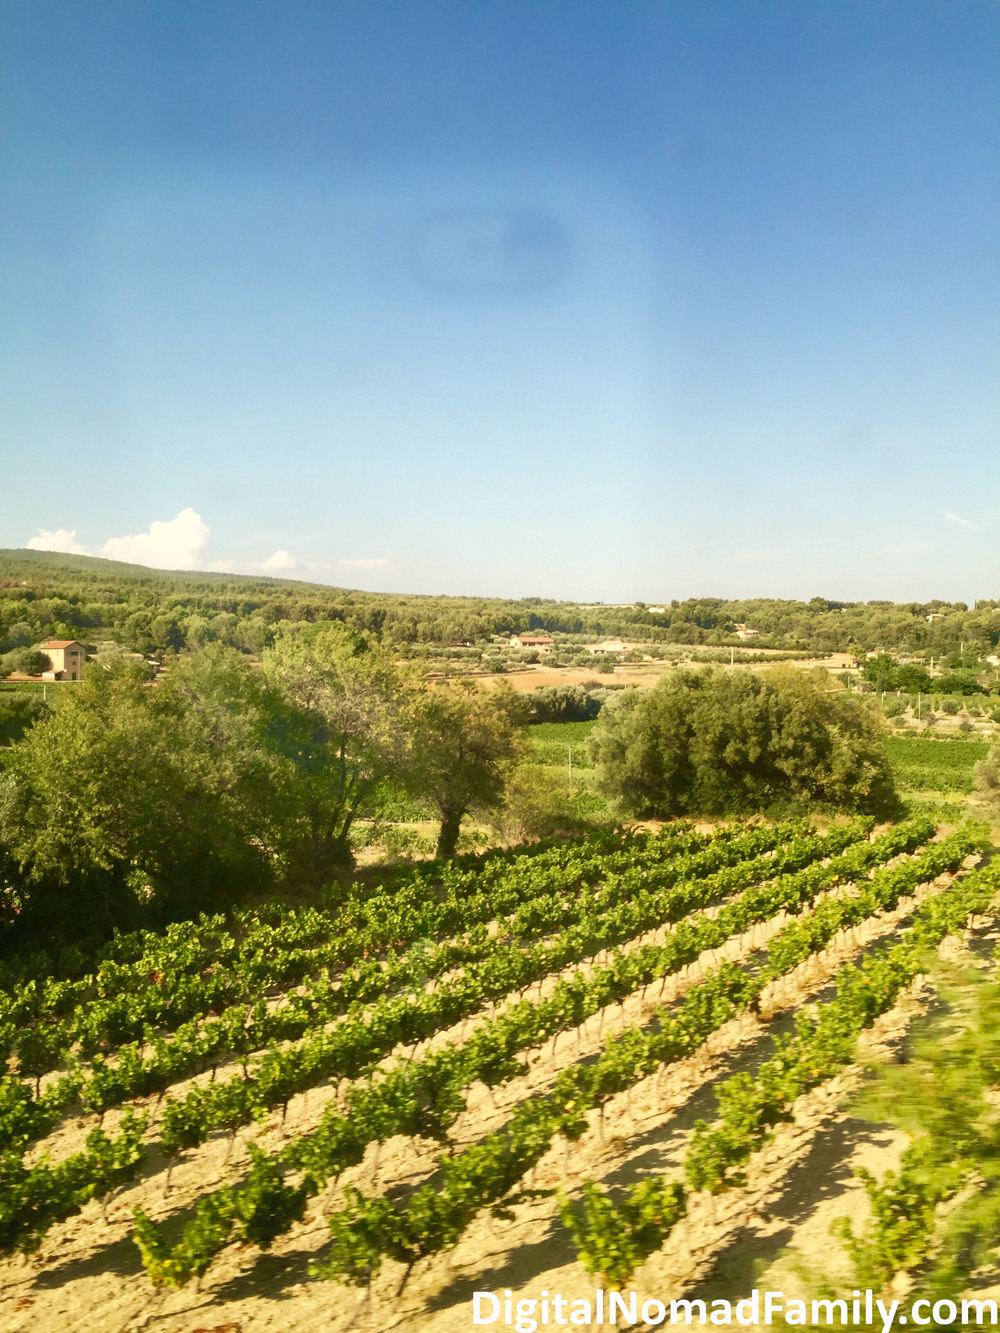 Vineyard view from the train windows